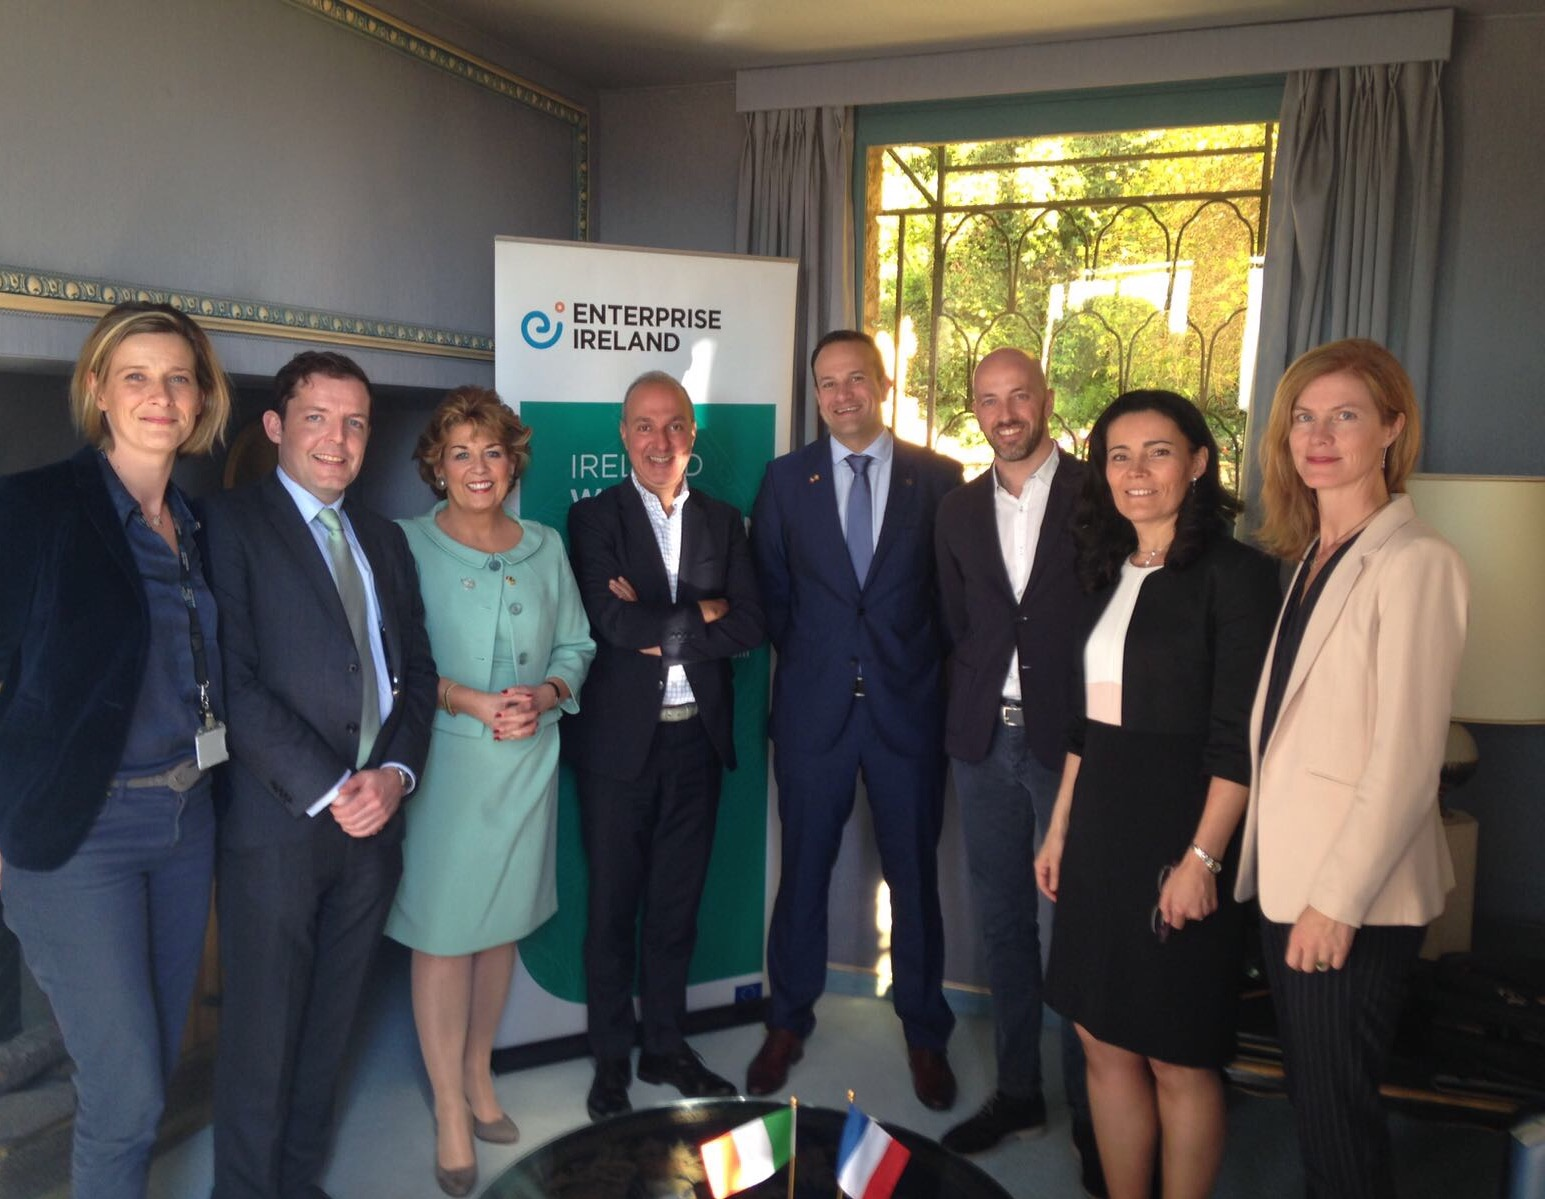 Enterprise Ireland Cannes Minister Ambassador 17 March 2017.jpg